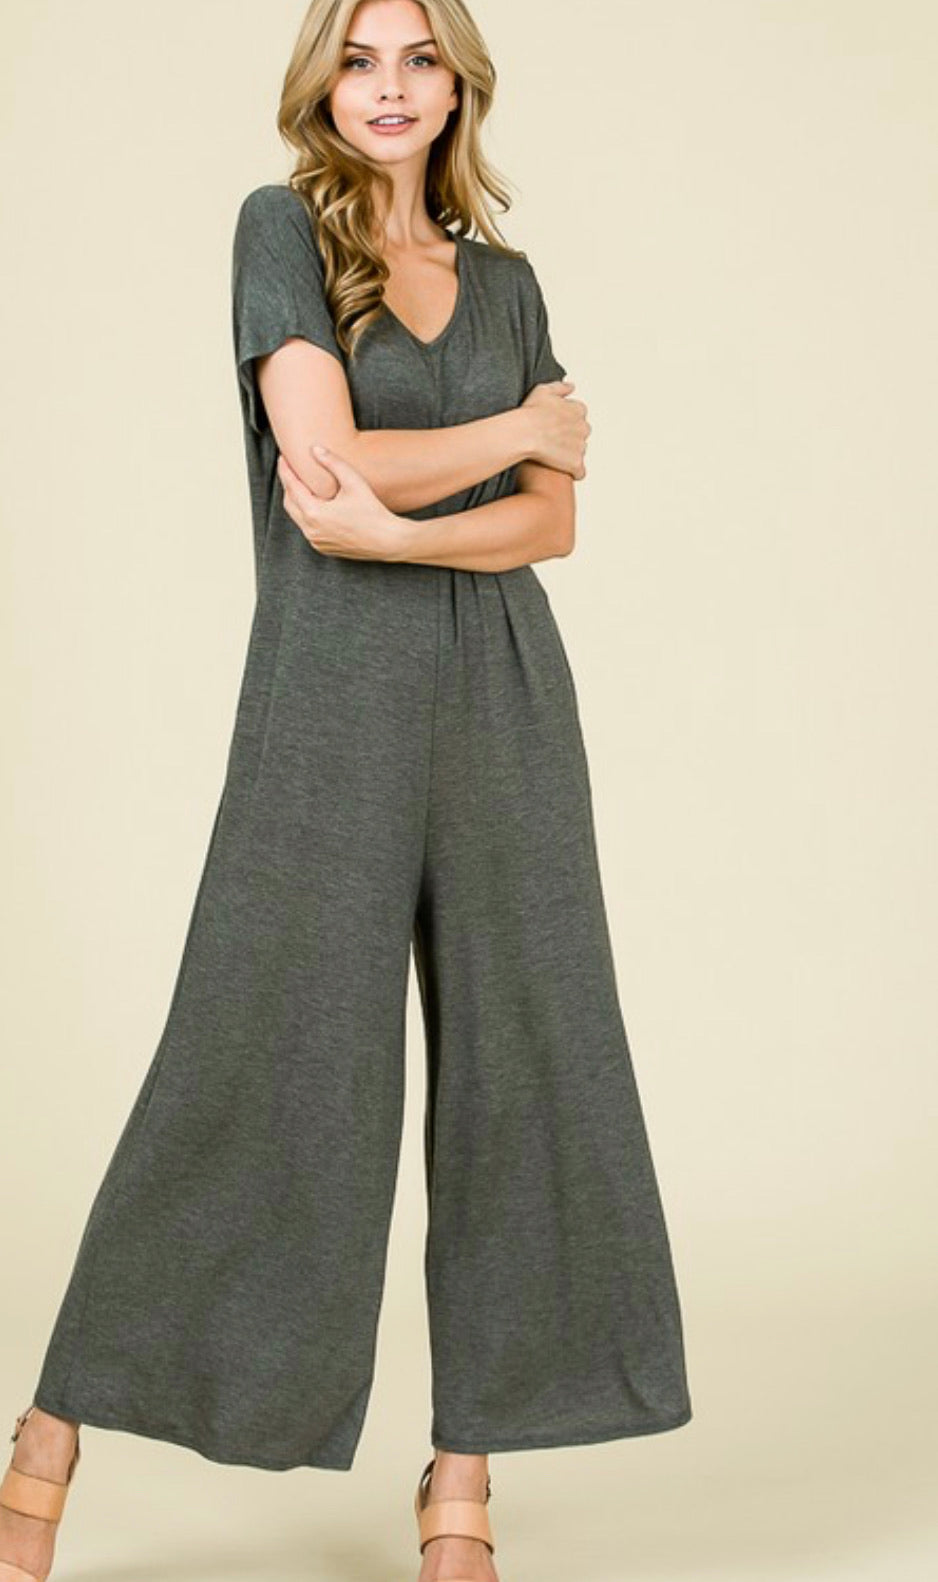 SHORT SLEEVE SOLID JUMPSUIT WITH SIDE POCKETS